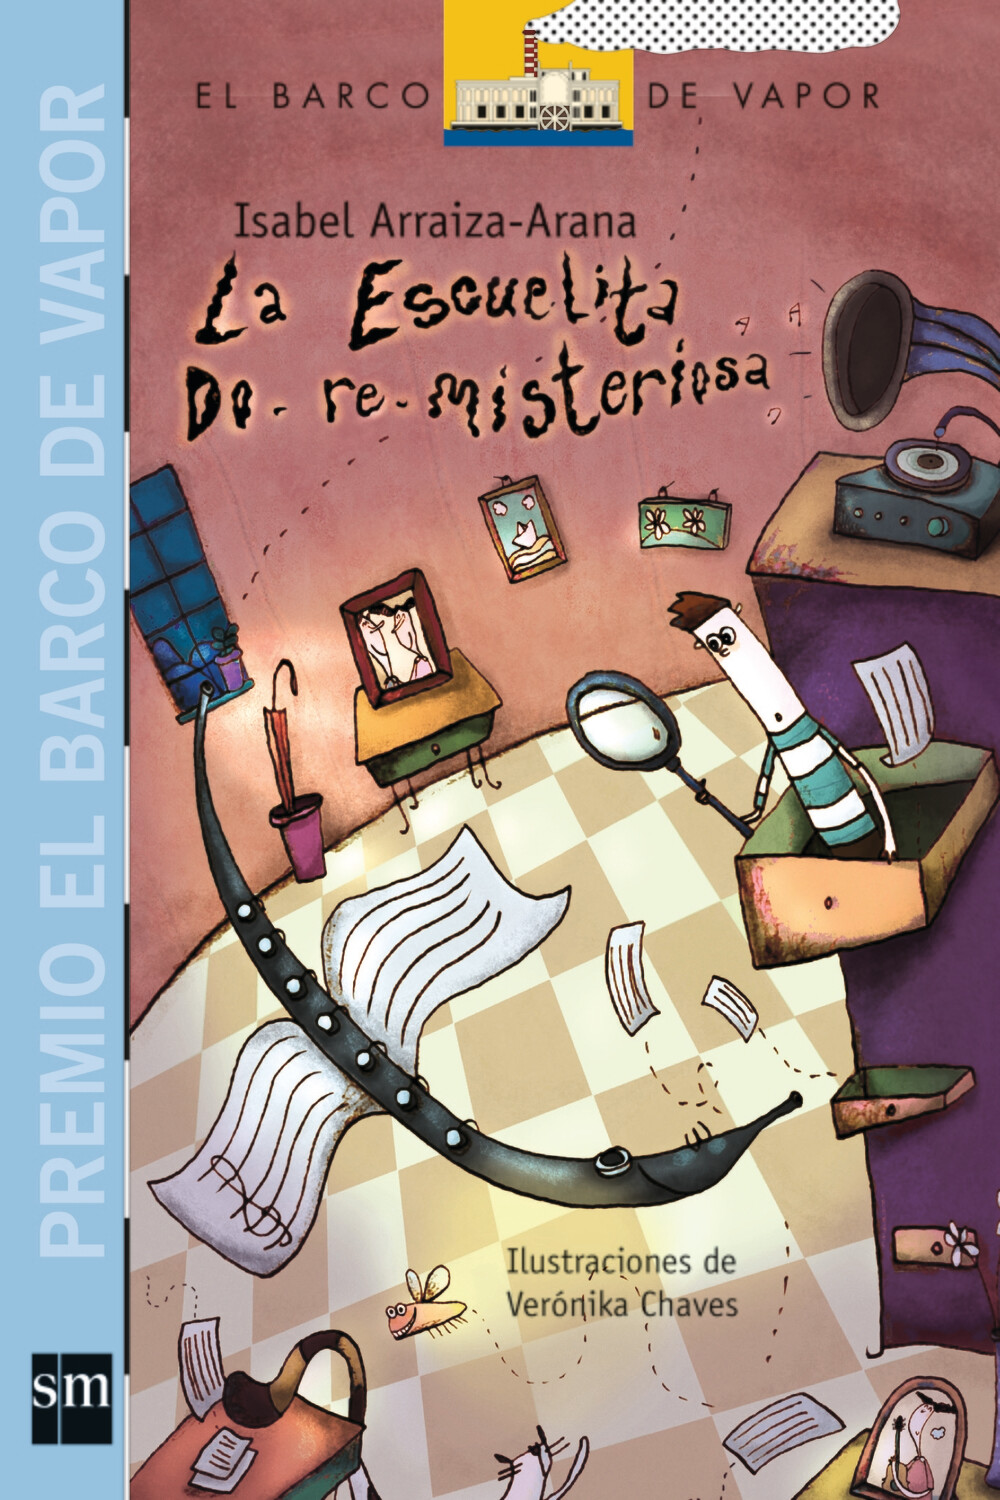 CUARTO - LA ESCUELITA DO-RE-MISTERIOSA - SM - ISBN 9781935556299